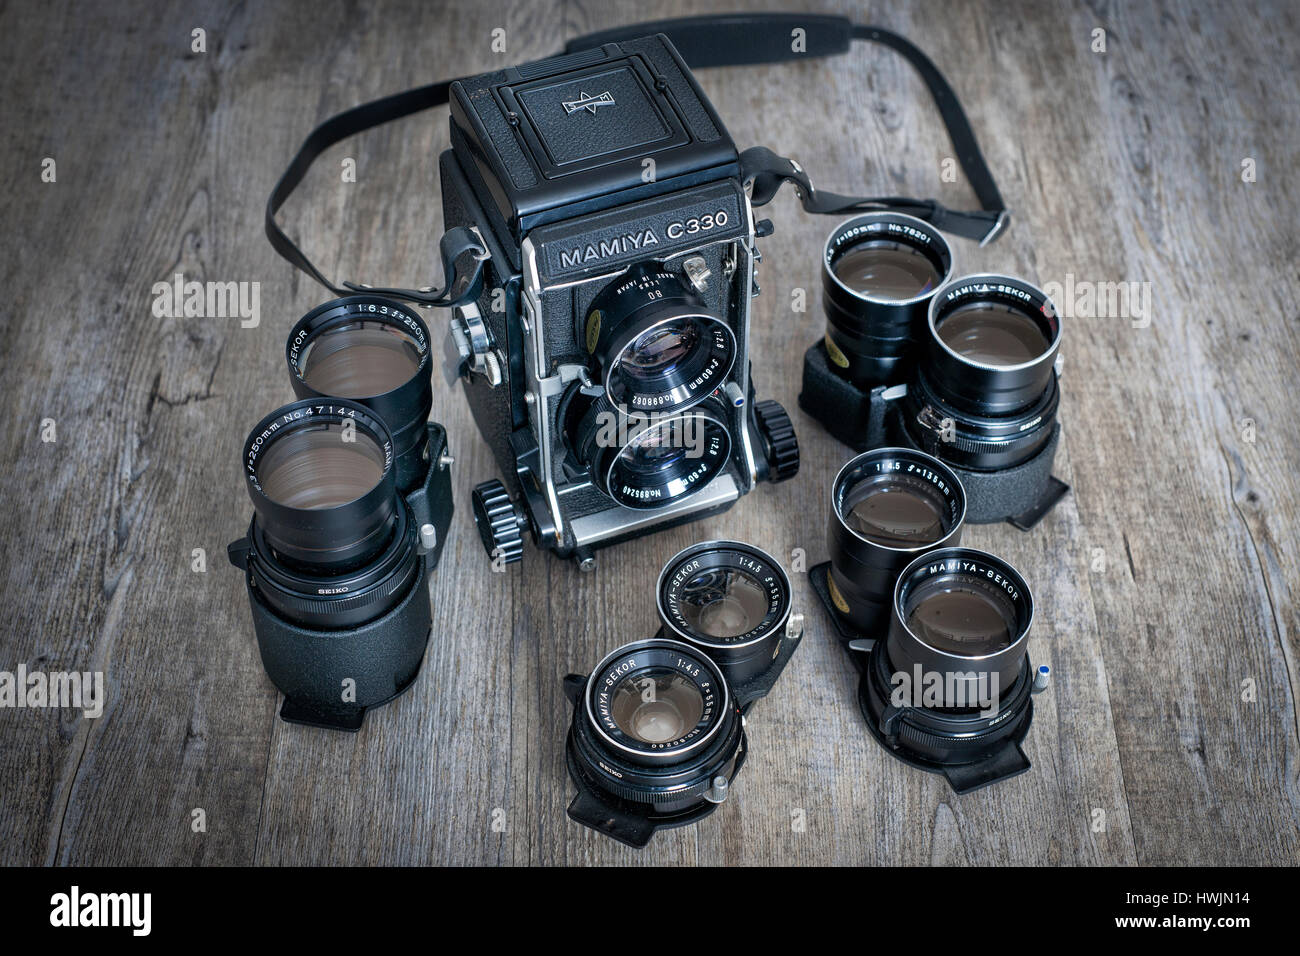 Mamiya C330 medium format twin lens roll film camera with interchangable lenses. - Stock Image